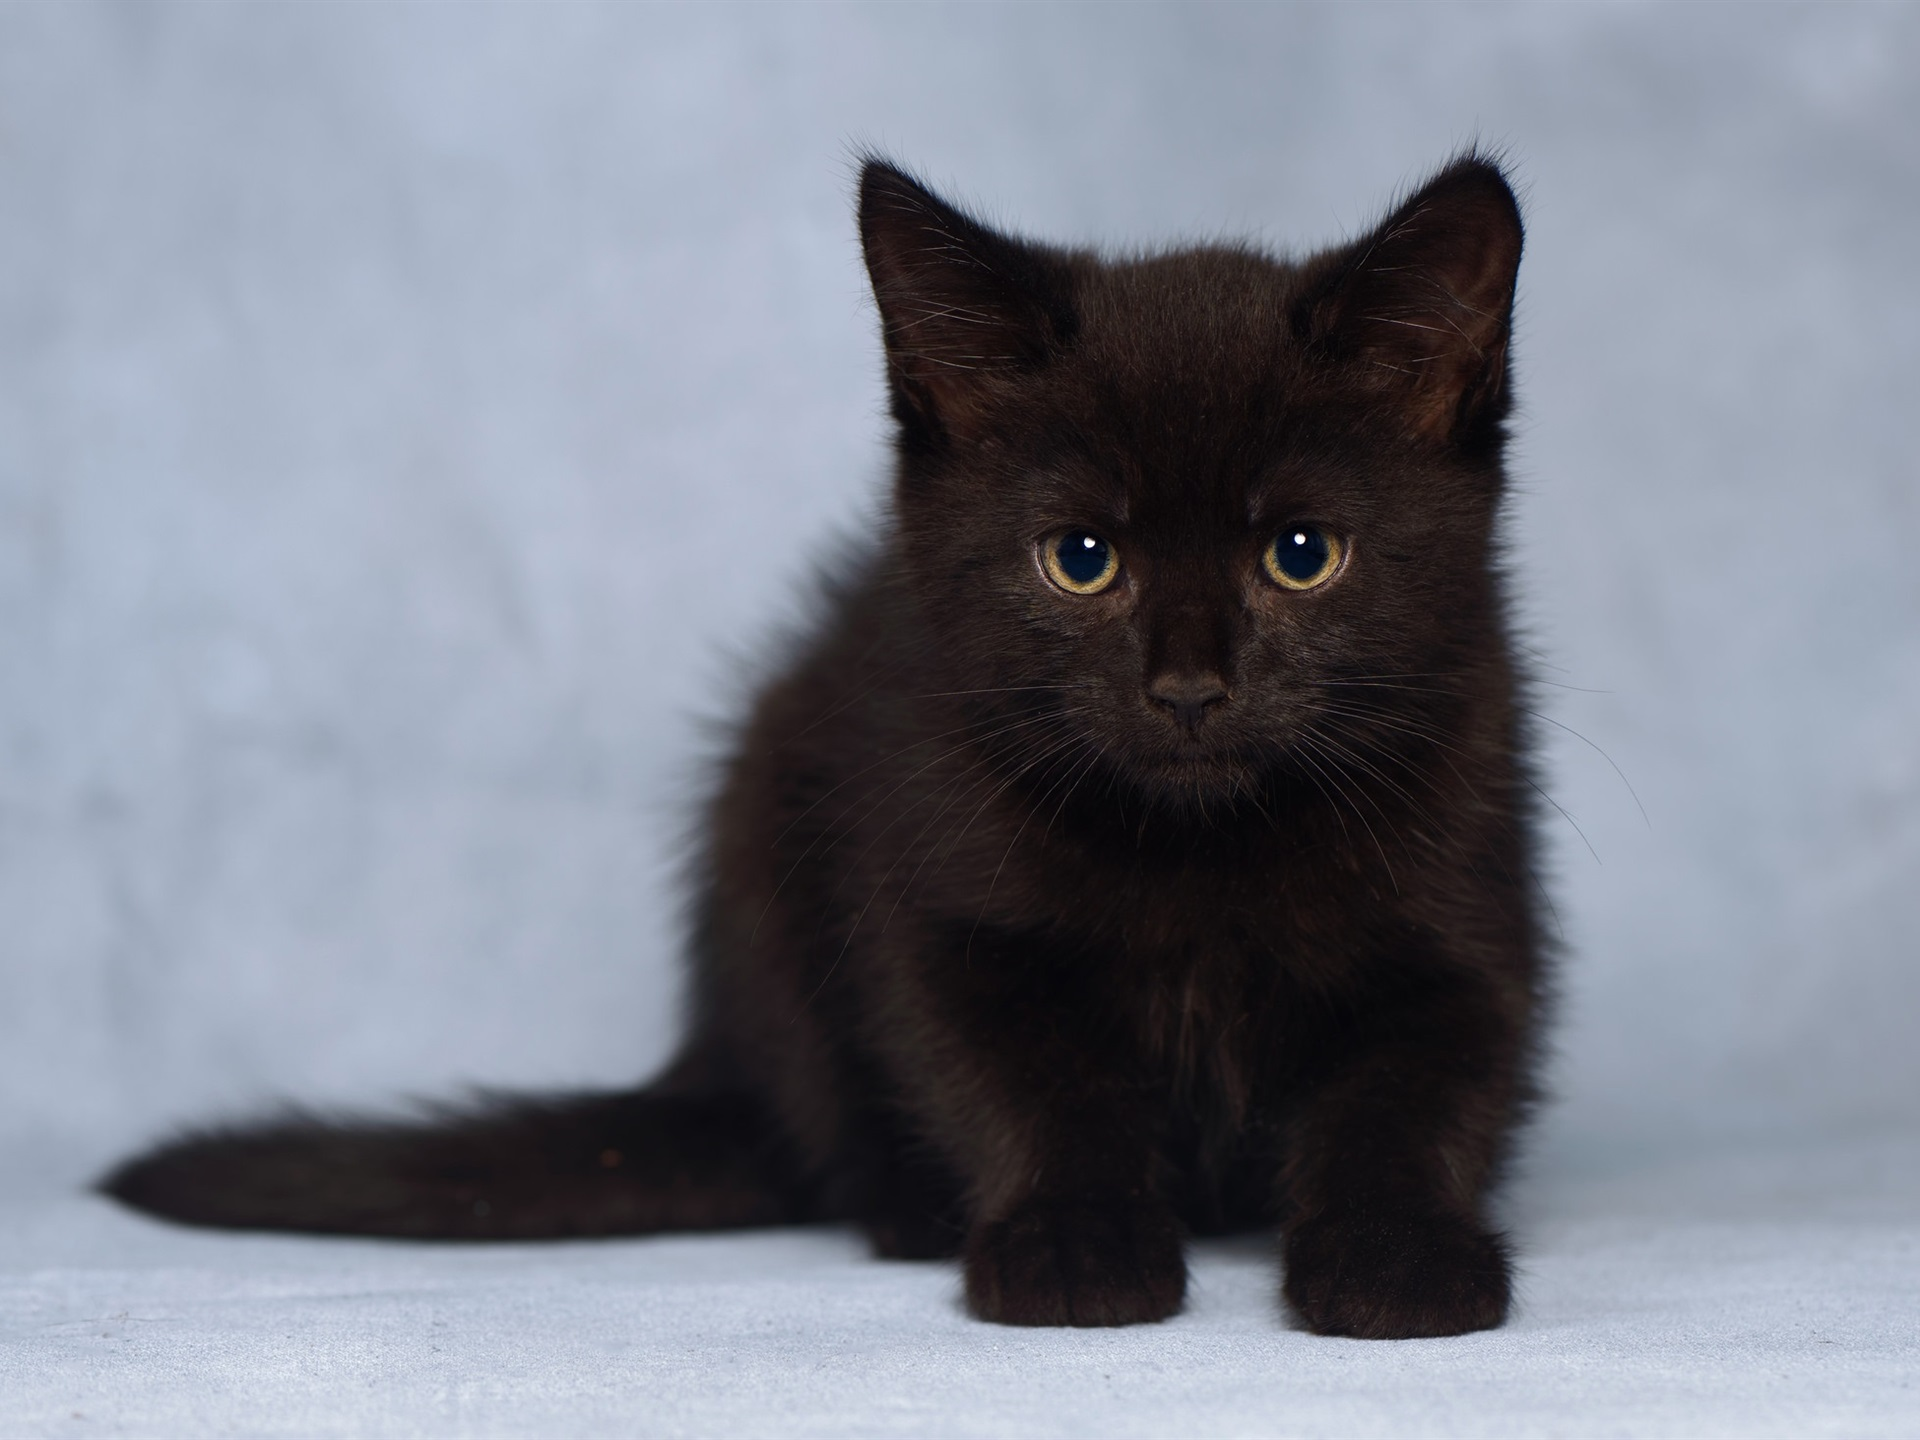 Wallpaper Cute Furry Black Kitten 1920x1440 Hd Picture Image